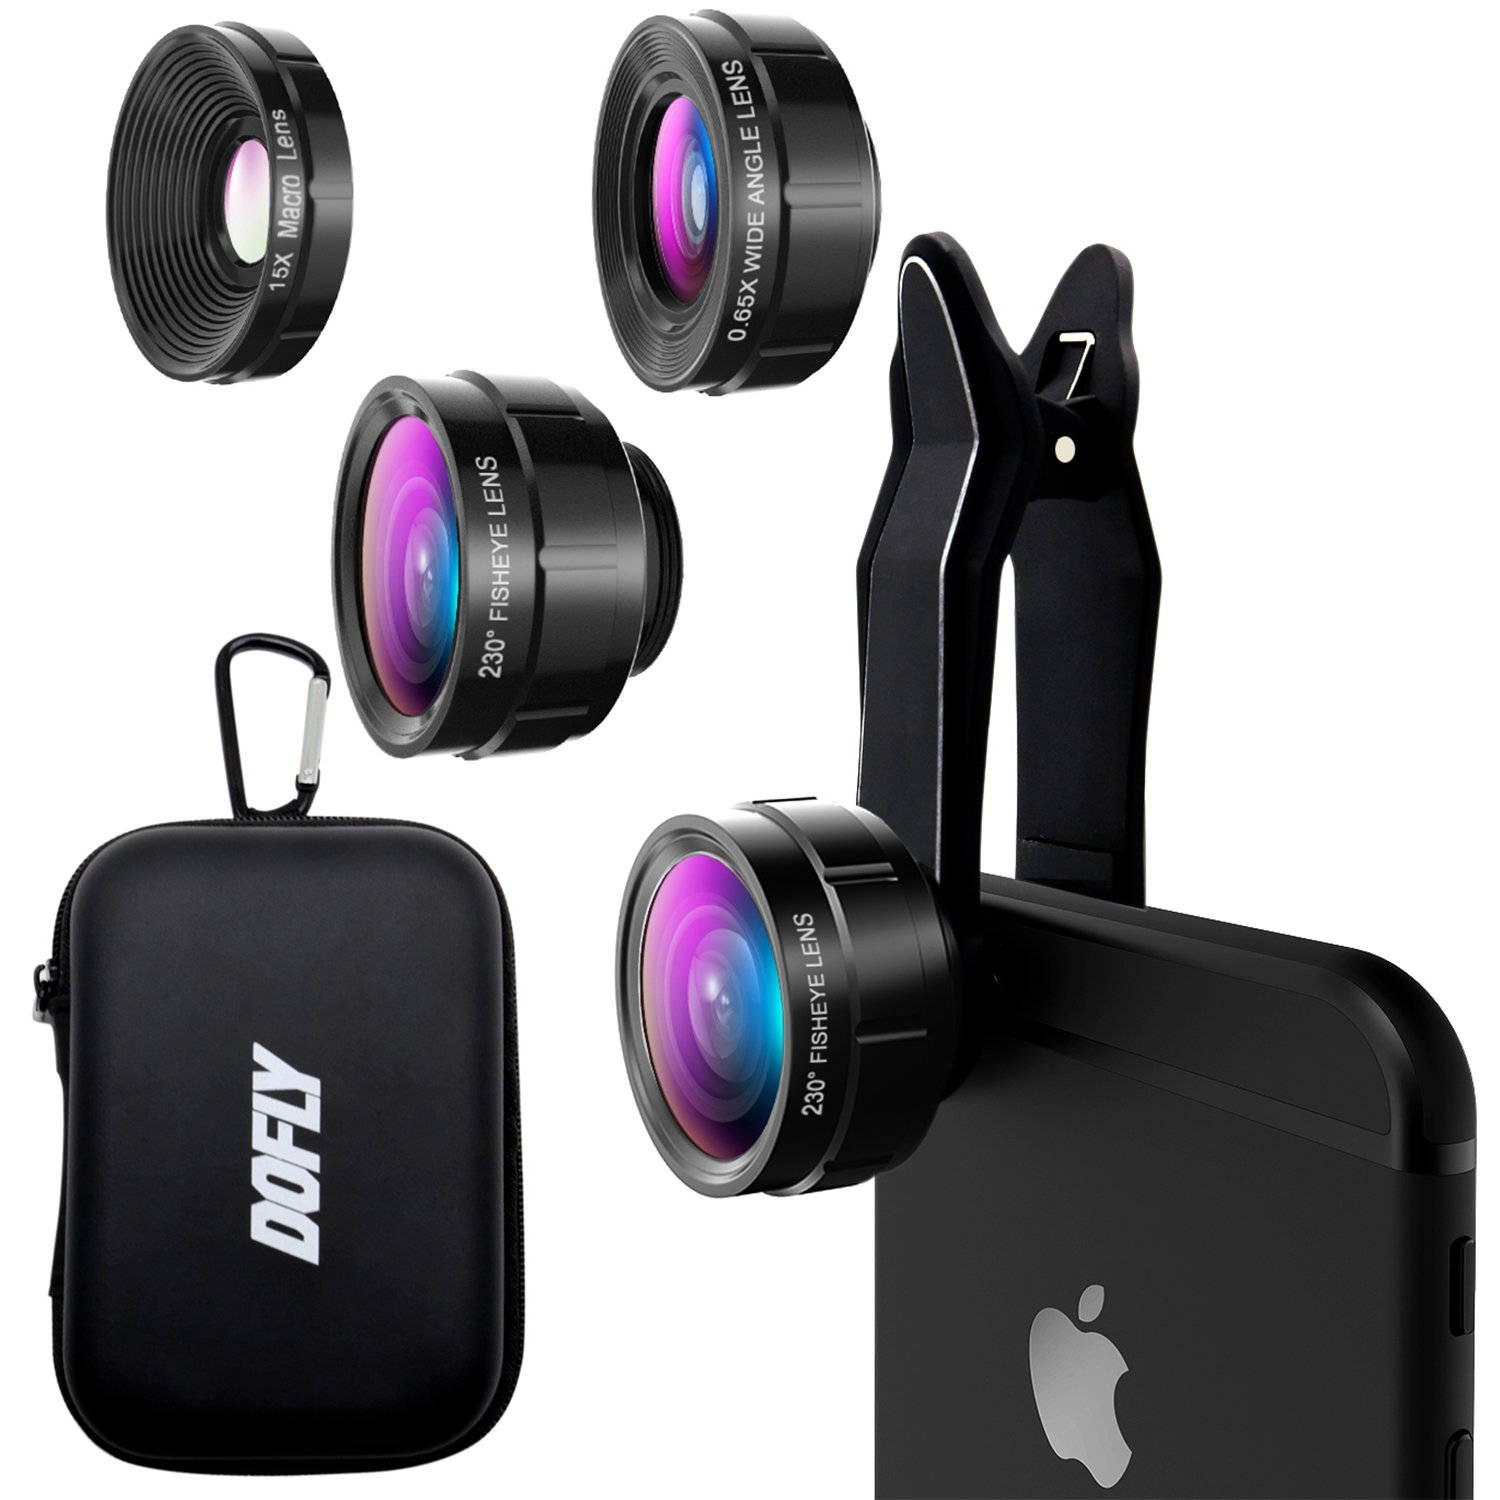 DOFLY Universal Professional HD Camera Lens Kit for iPhone X/8/7Plus/7/6sPlus/6s, Samsung S8+/S8 and other Cellphones (230 Degree Fisheye Lens, 0.65X Super Wide Angle Lens, 15X Super Macro Lens)-Black by DOFLY (Image #1)